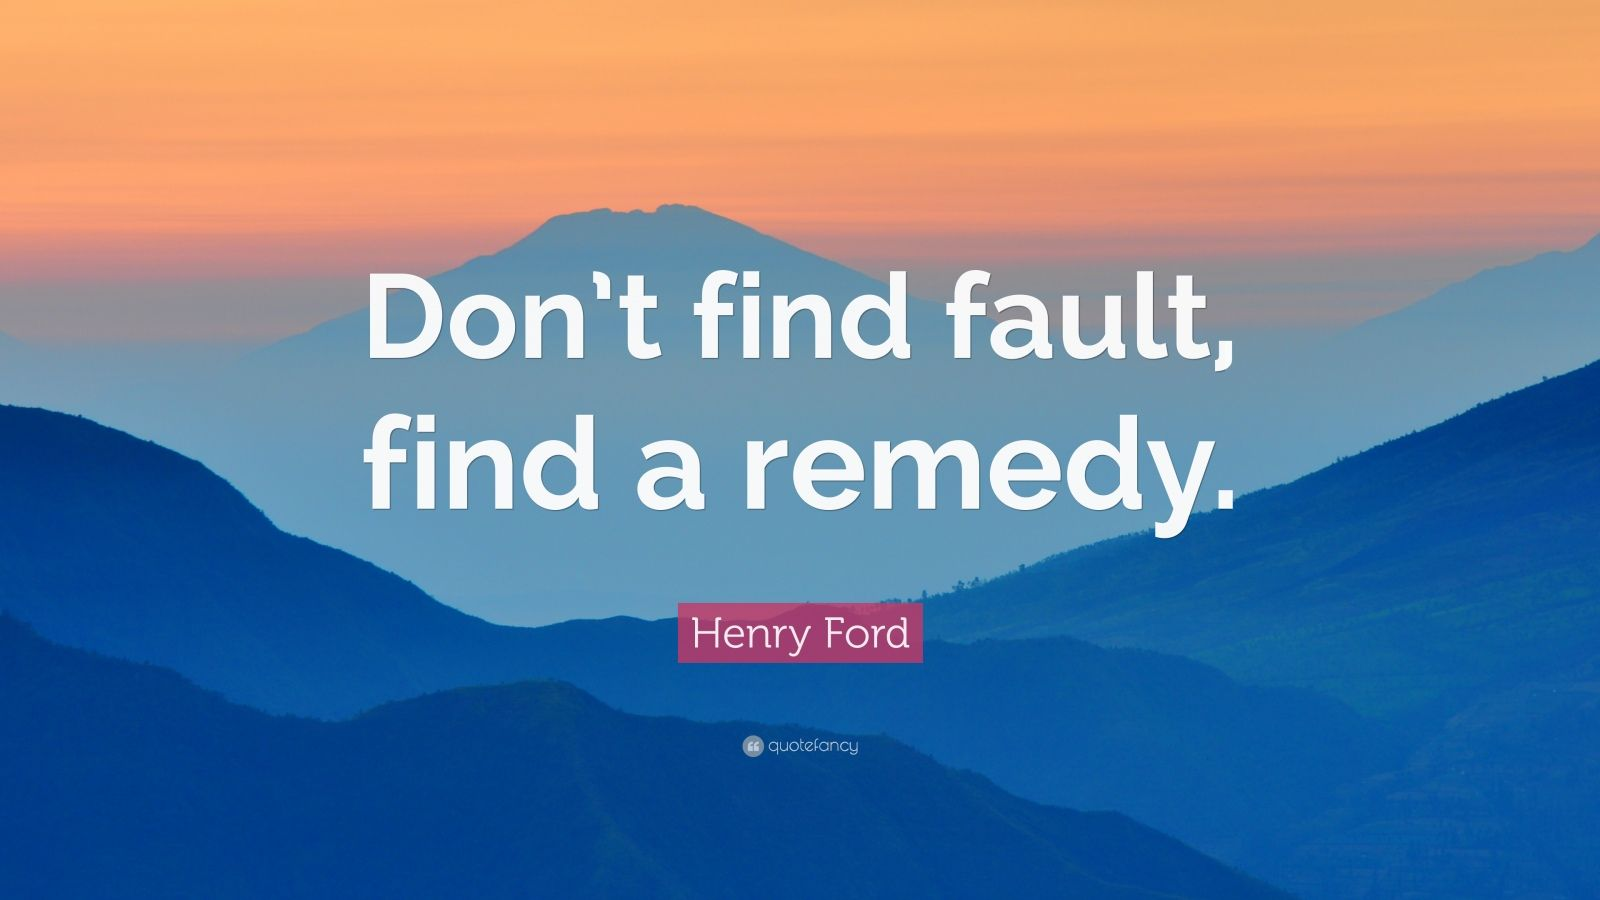 Funny Motivational Wallpapers With Quotes Henry Ford Quote Don T Find Fault Find A Remedy 24